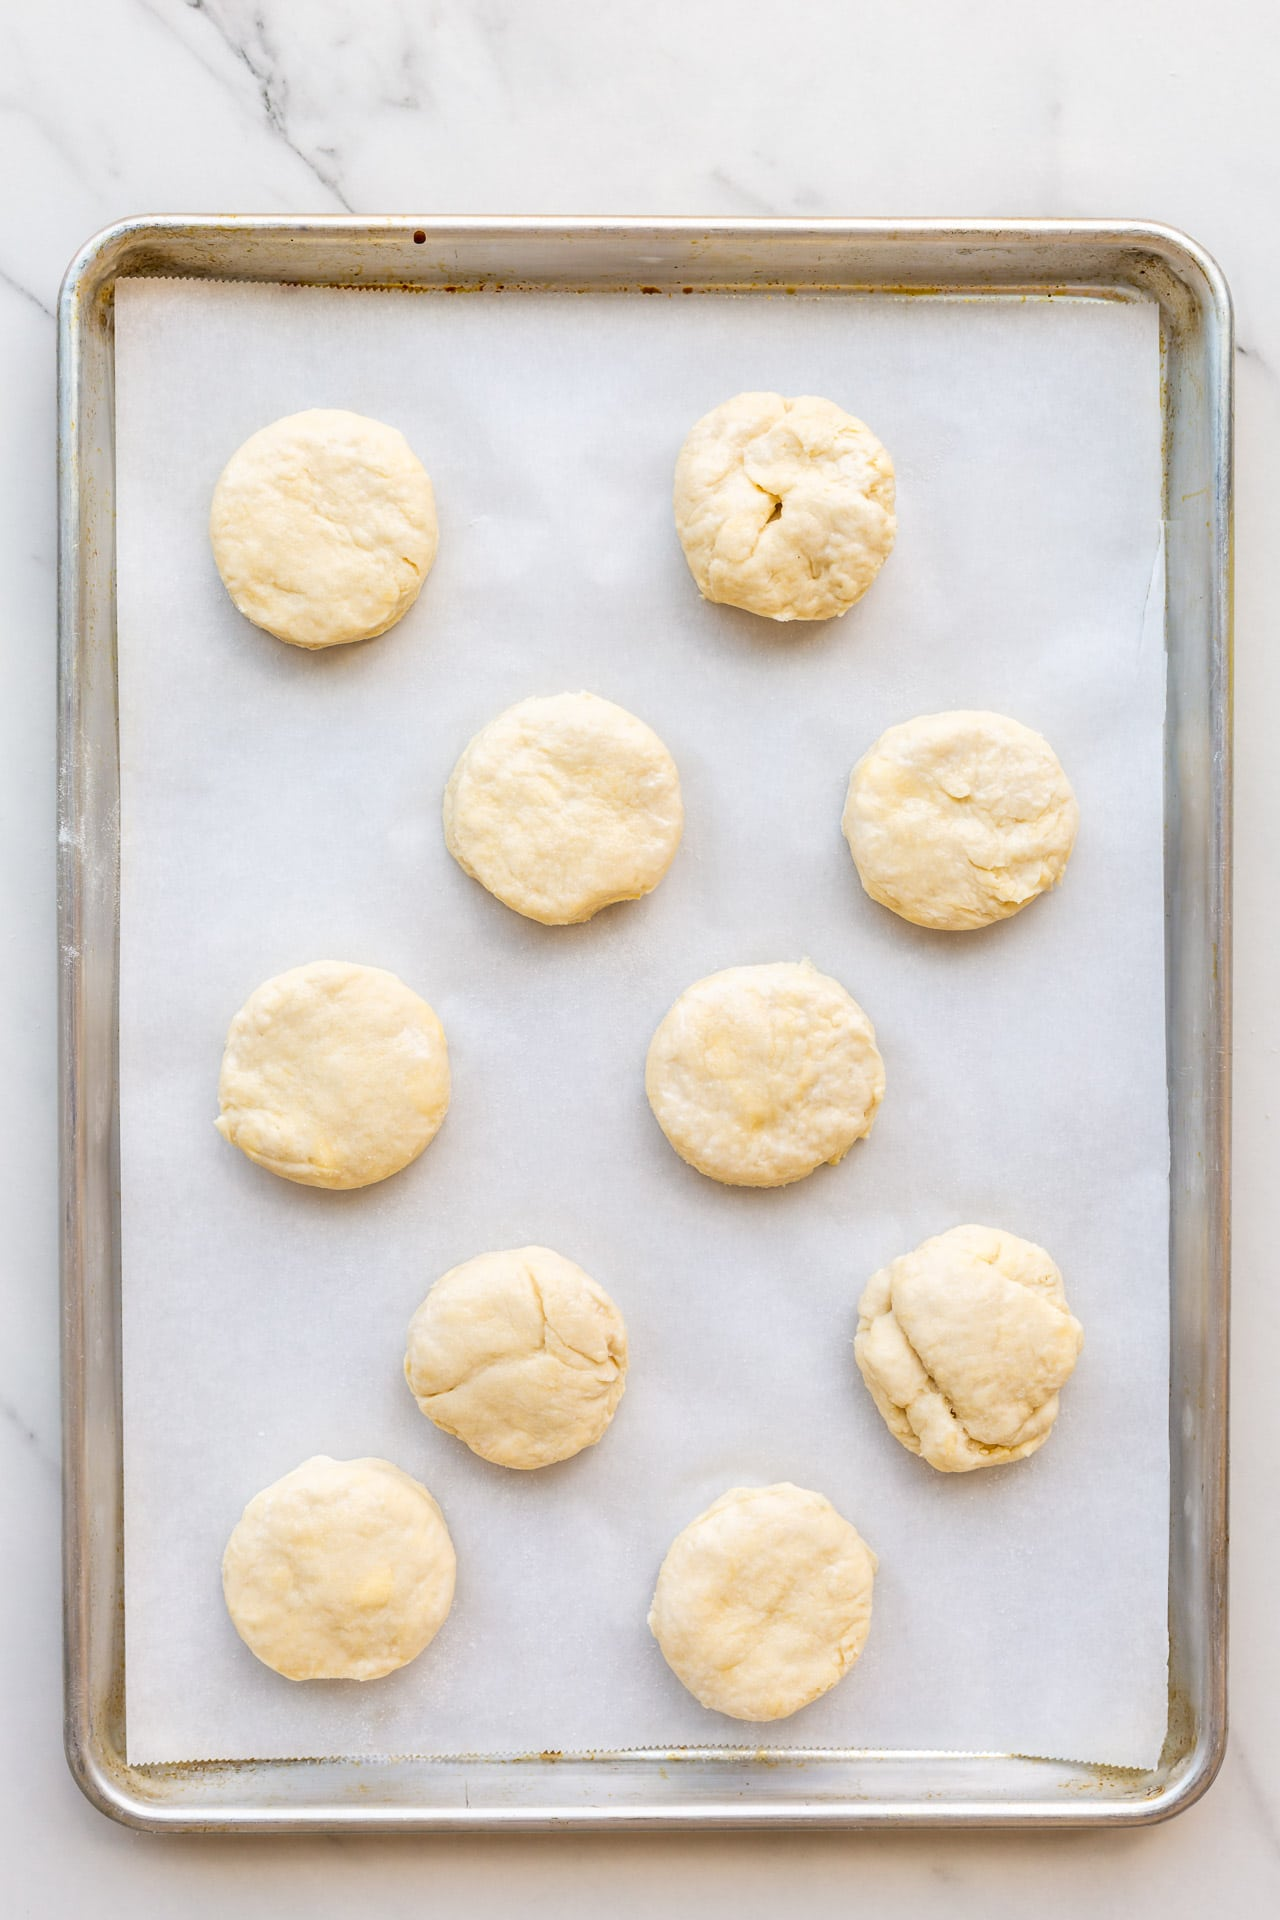 Homemade biscuits on a parchment-lined baking sheet ready to be baked